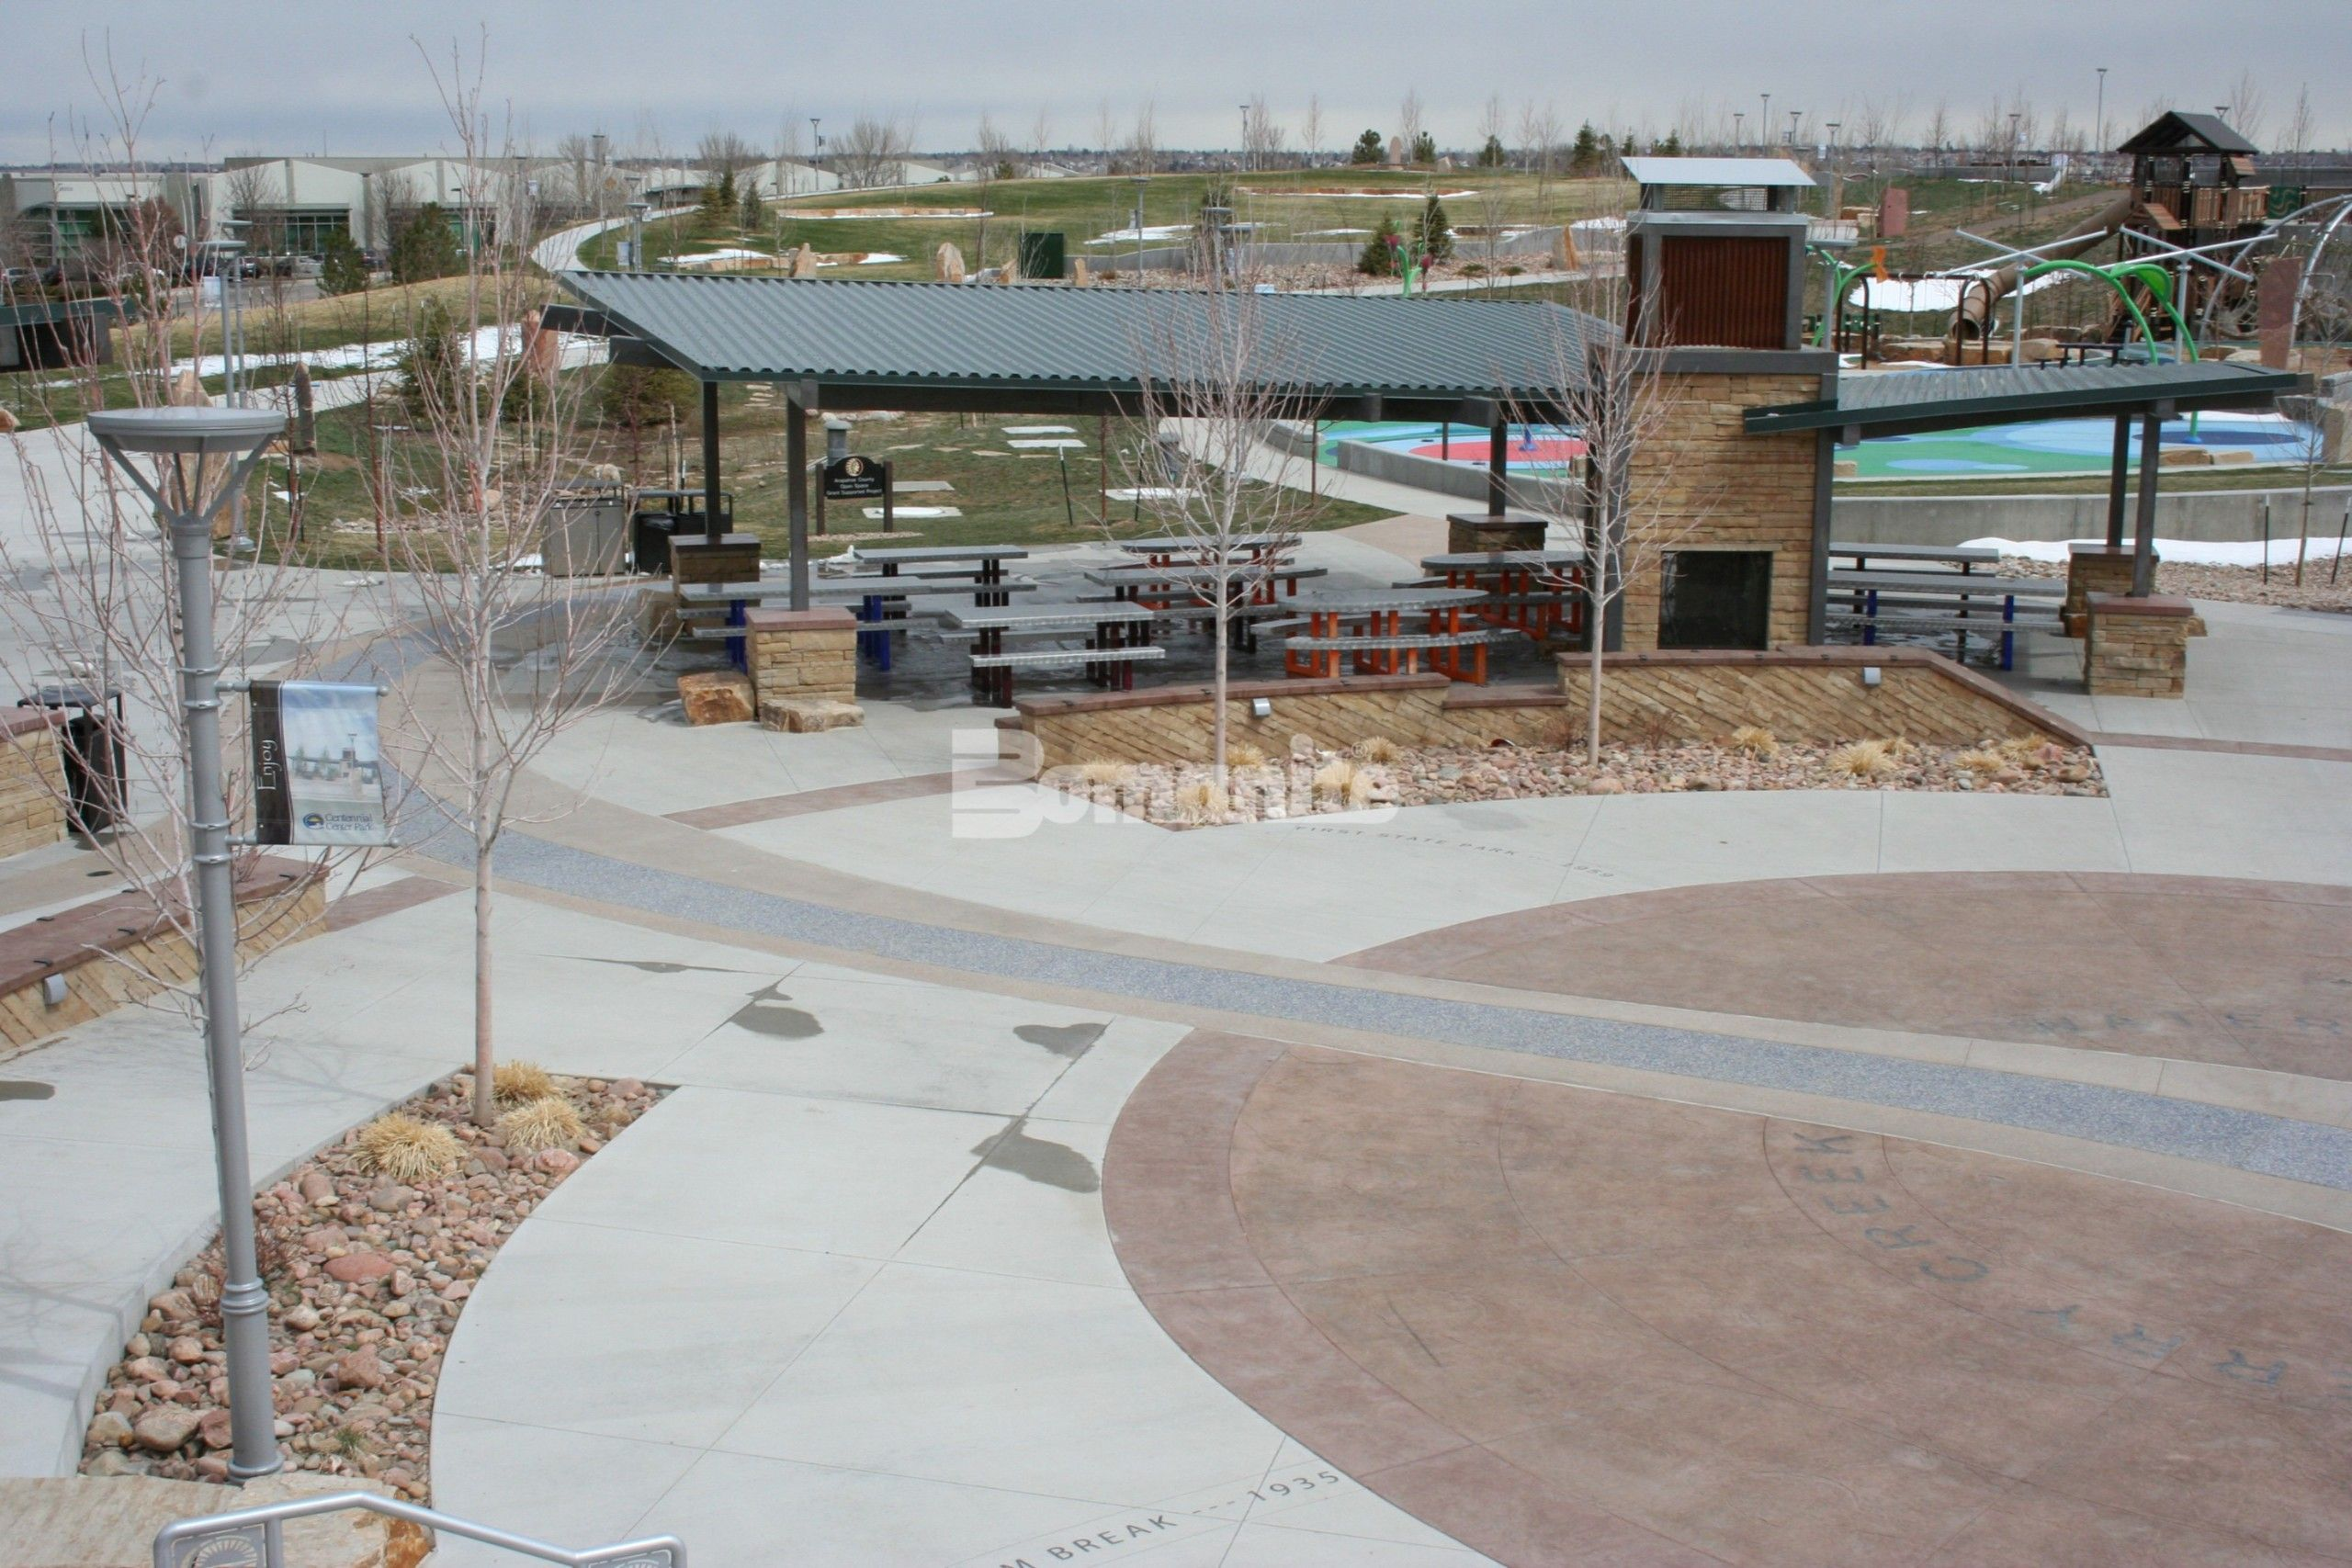 Centennial Center Park located in Colorado is an educational source with a play park that incorporates several Bomanite Decorative Concrete Systems used to inform visitors about the history of Cherry Creek Basin and was installed by Bomanite Licensee Premier Concrete Services.